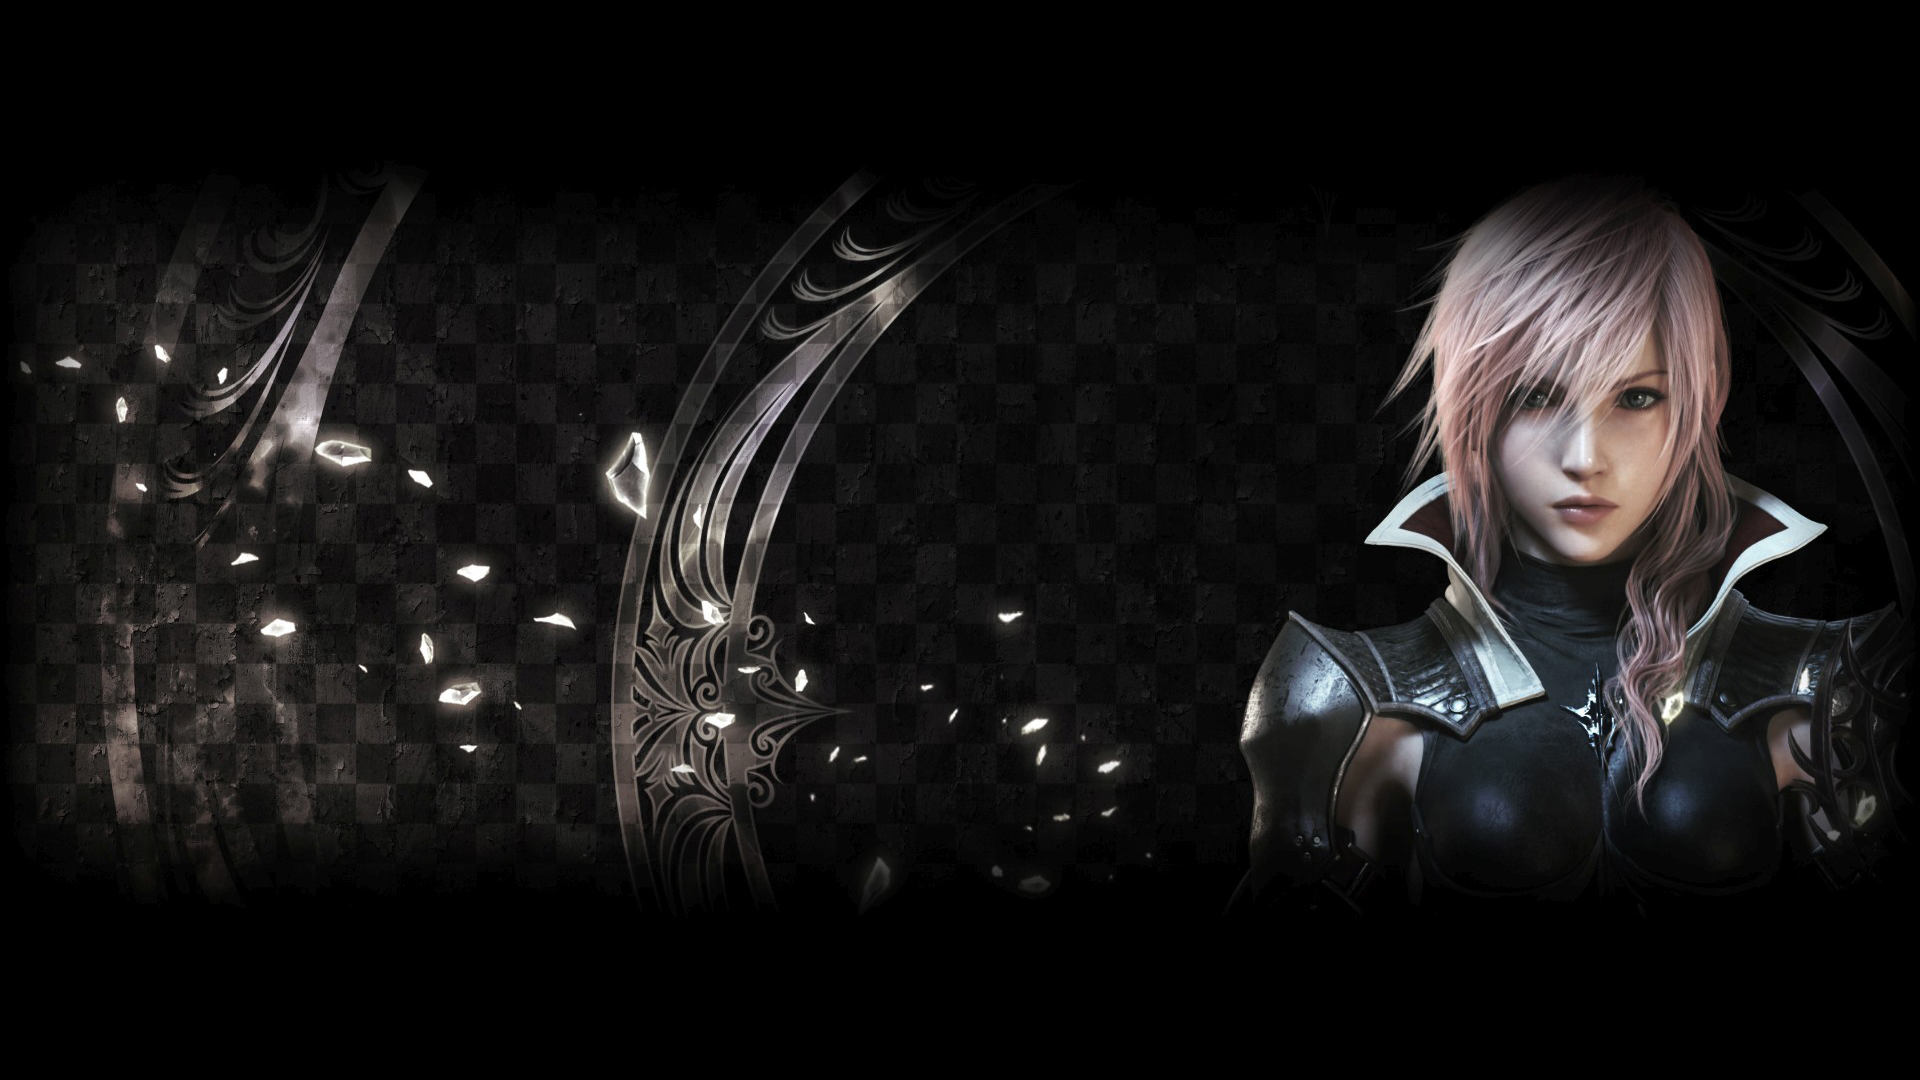 Final Fantasy Xiii Lightning Returns Wallpaper 003 Lightning